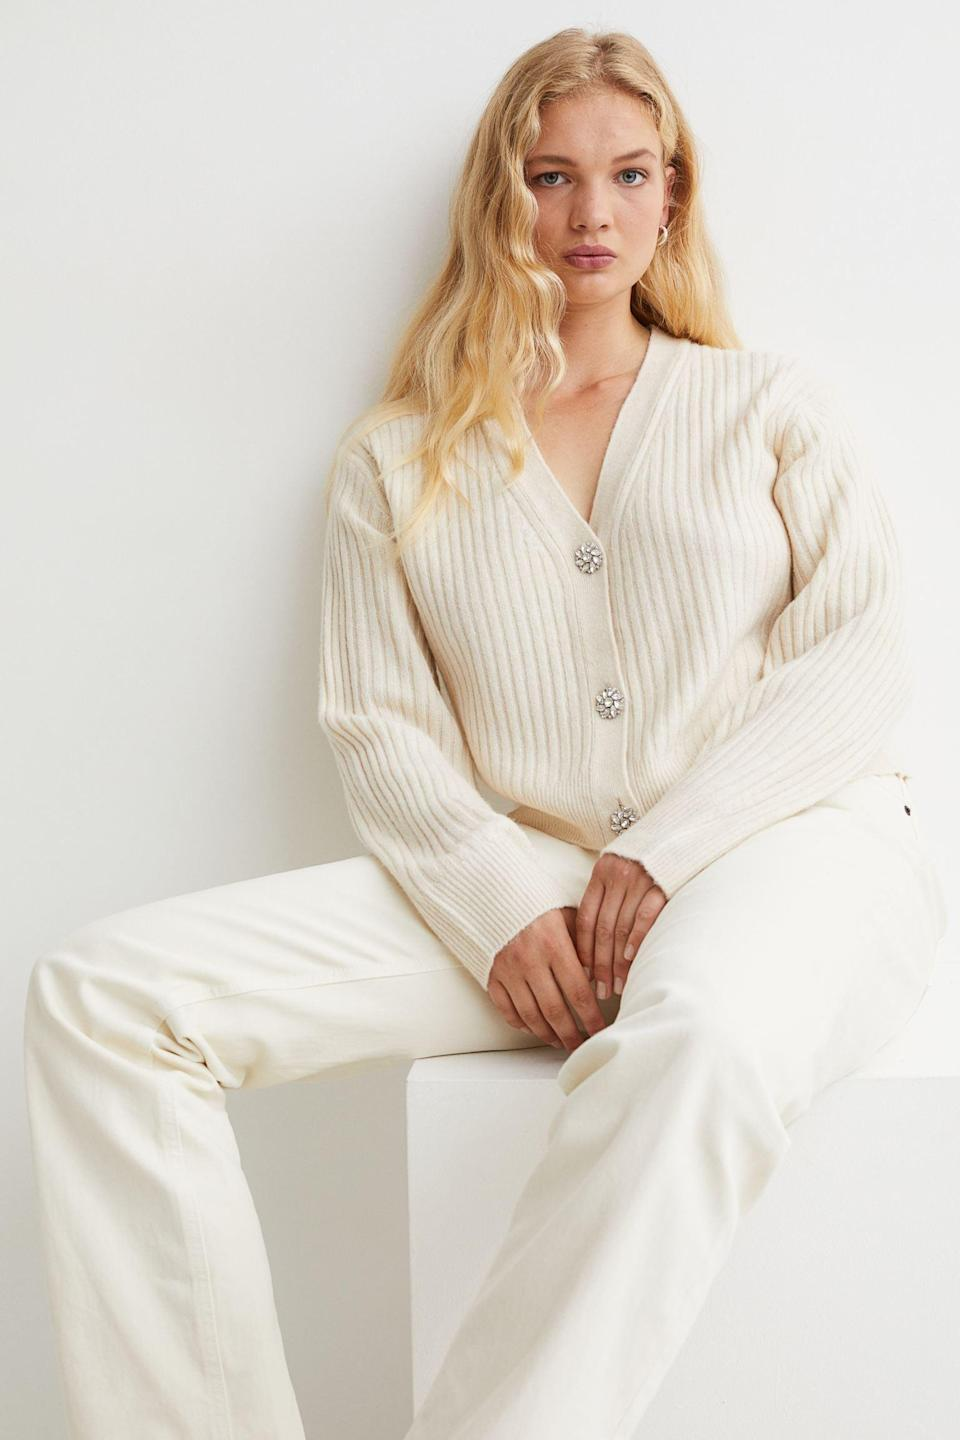 <p>The embellished buttons of this <span>Rib-Knit Cardigan</span> ($20) make it a step above the rest. You really can't go wrong with this gift - it's stylish plus affordable.</p>